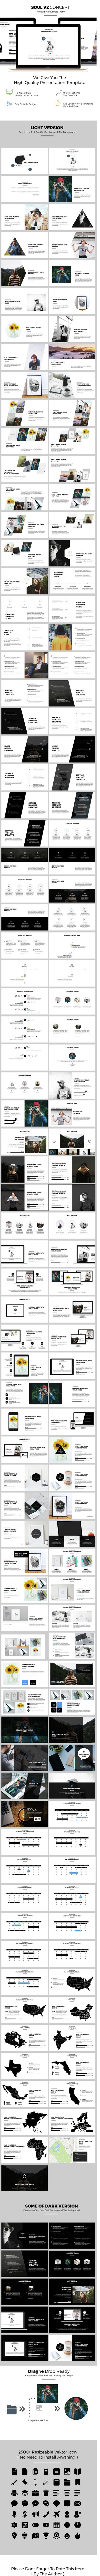 Soul V2 Multipurpose Powerpoint - Creative PowerPoint Templates